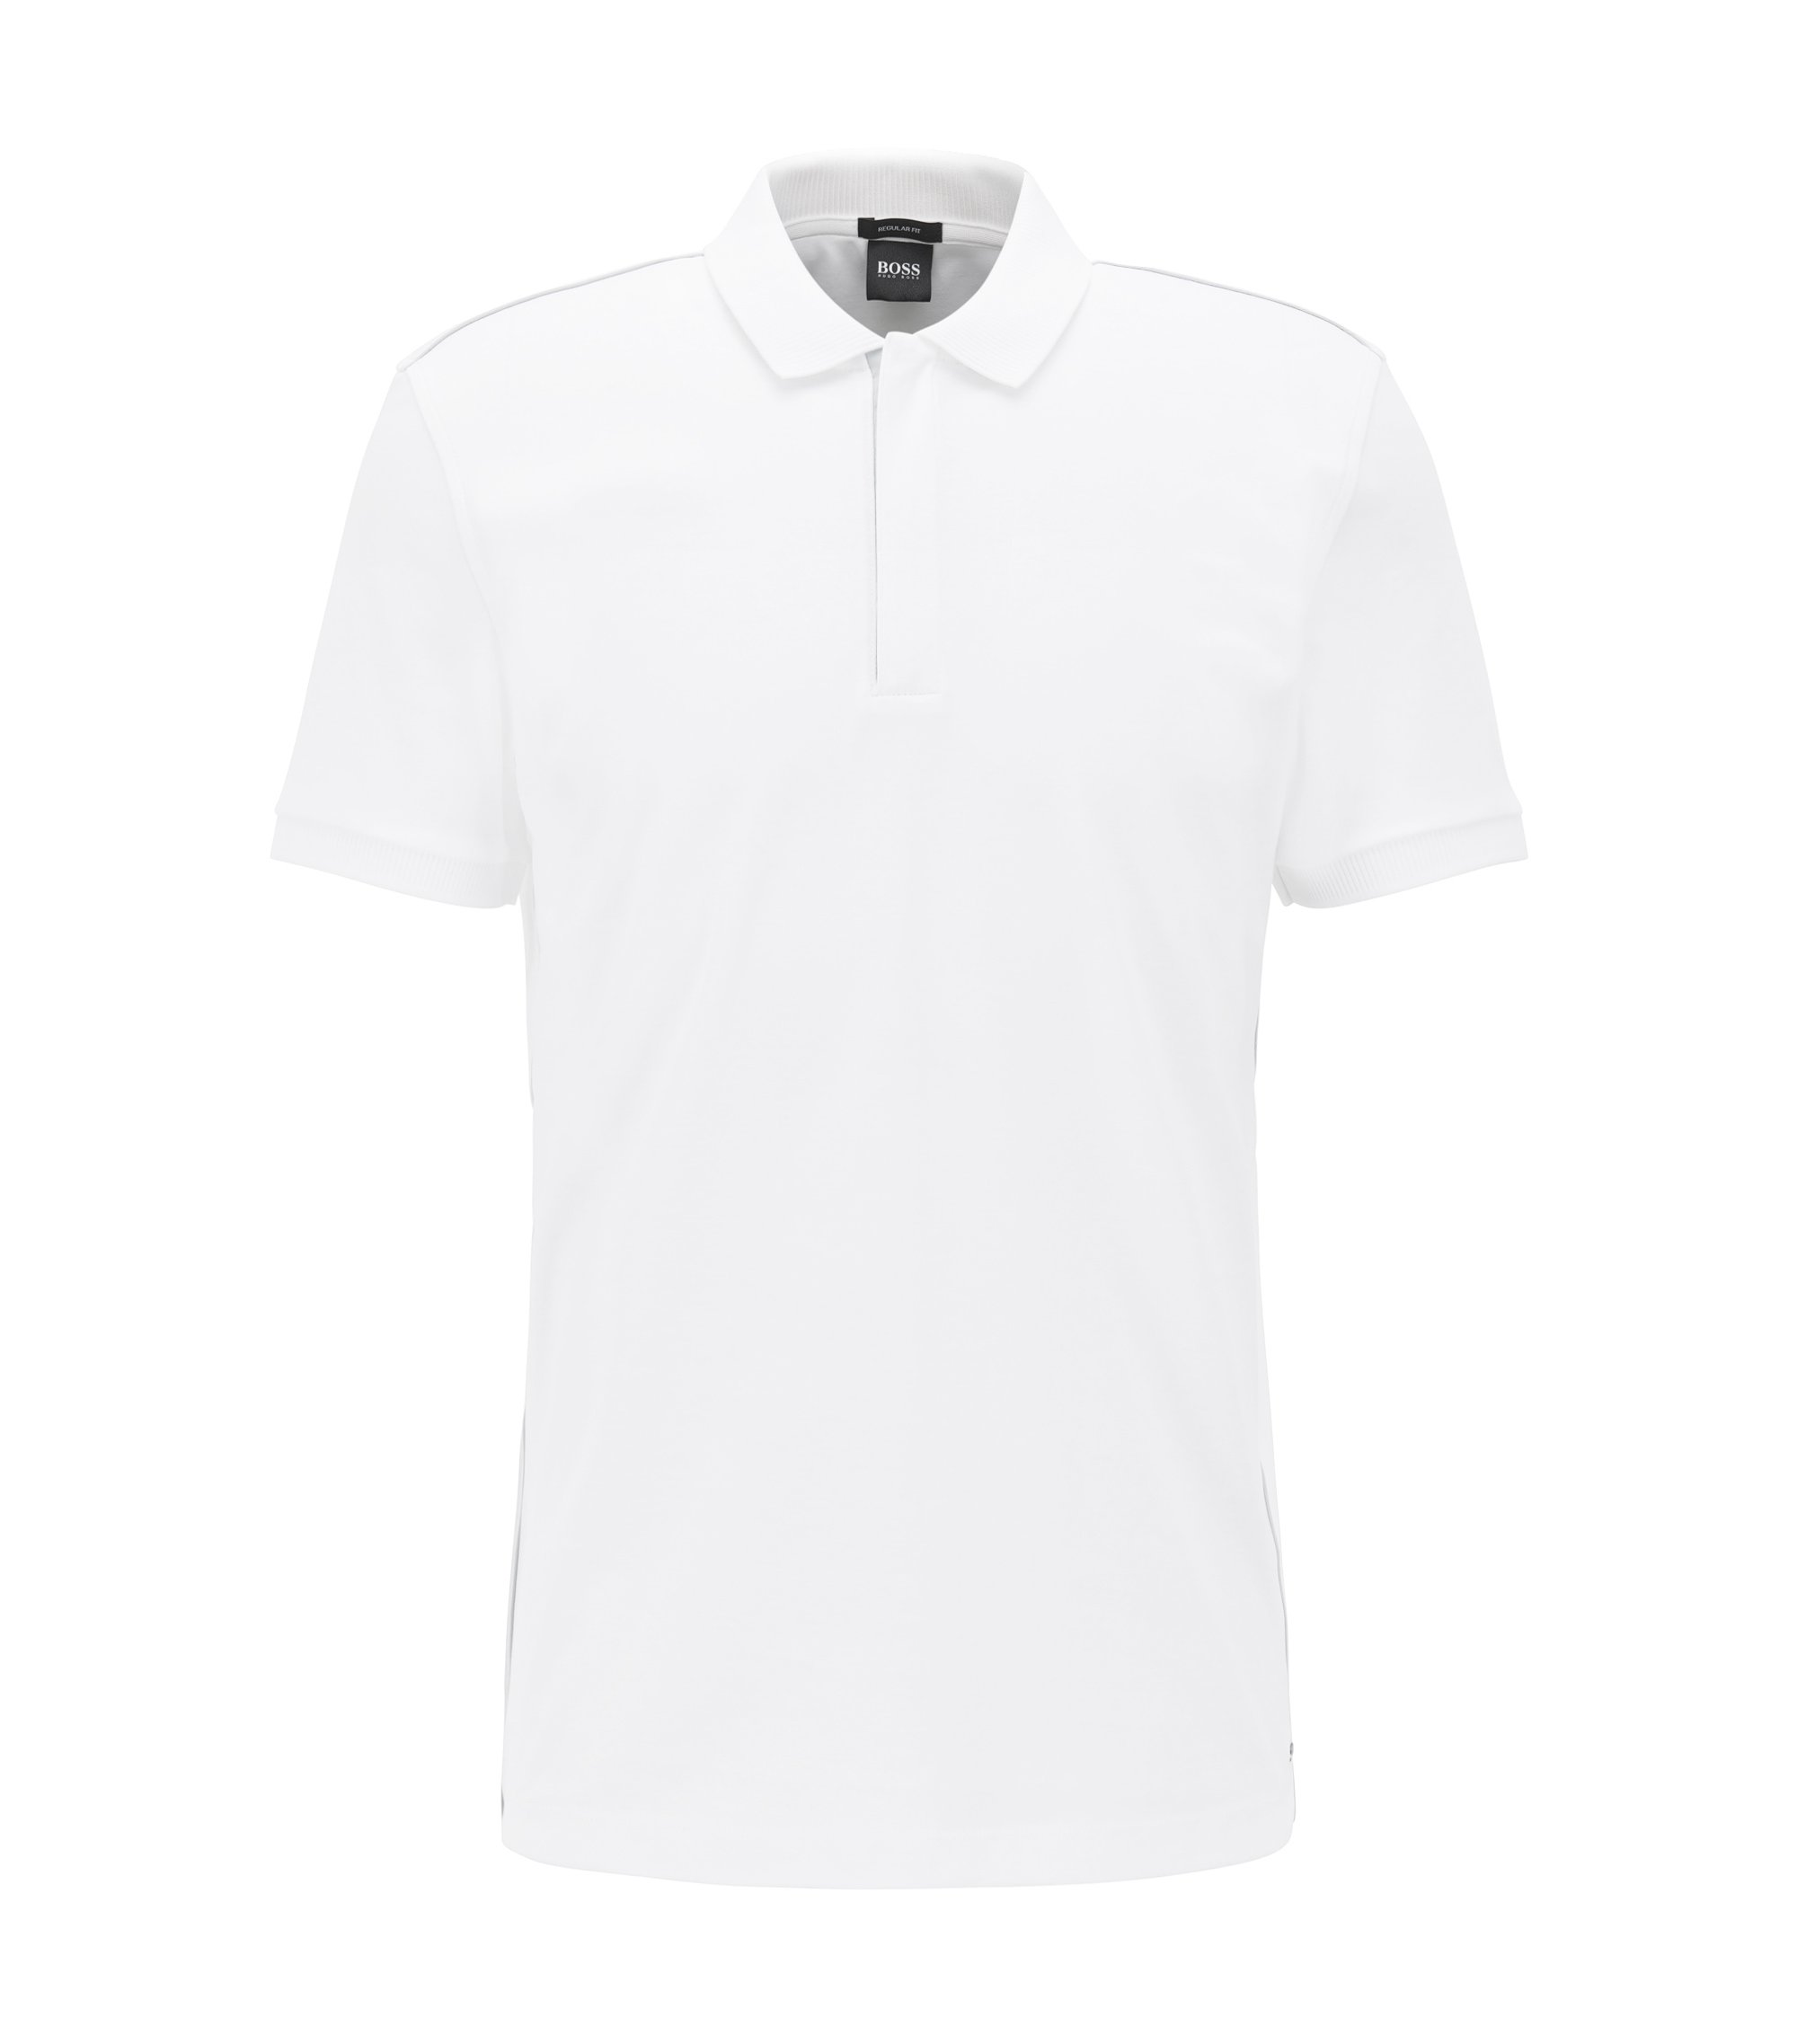 Cotton Polo Shirt, Regular Fit | Pohl, White